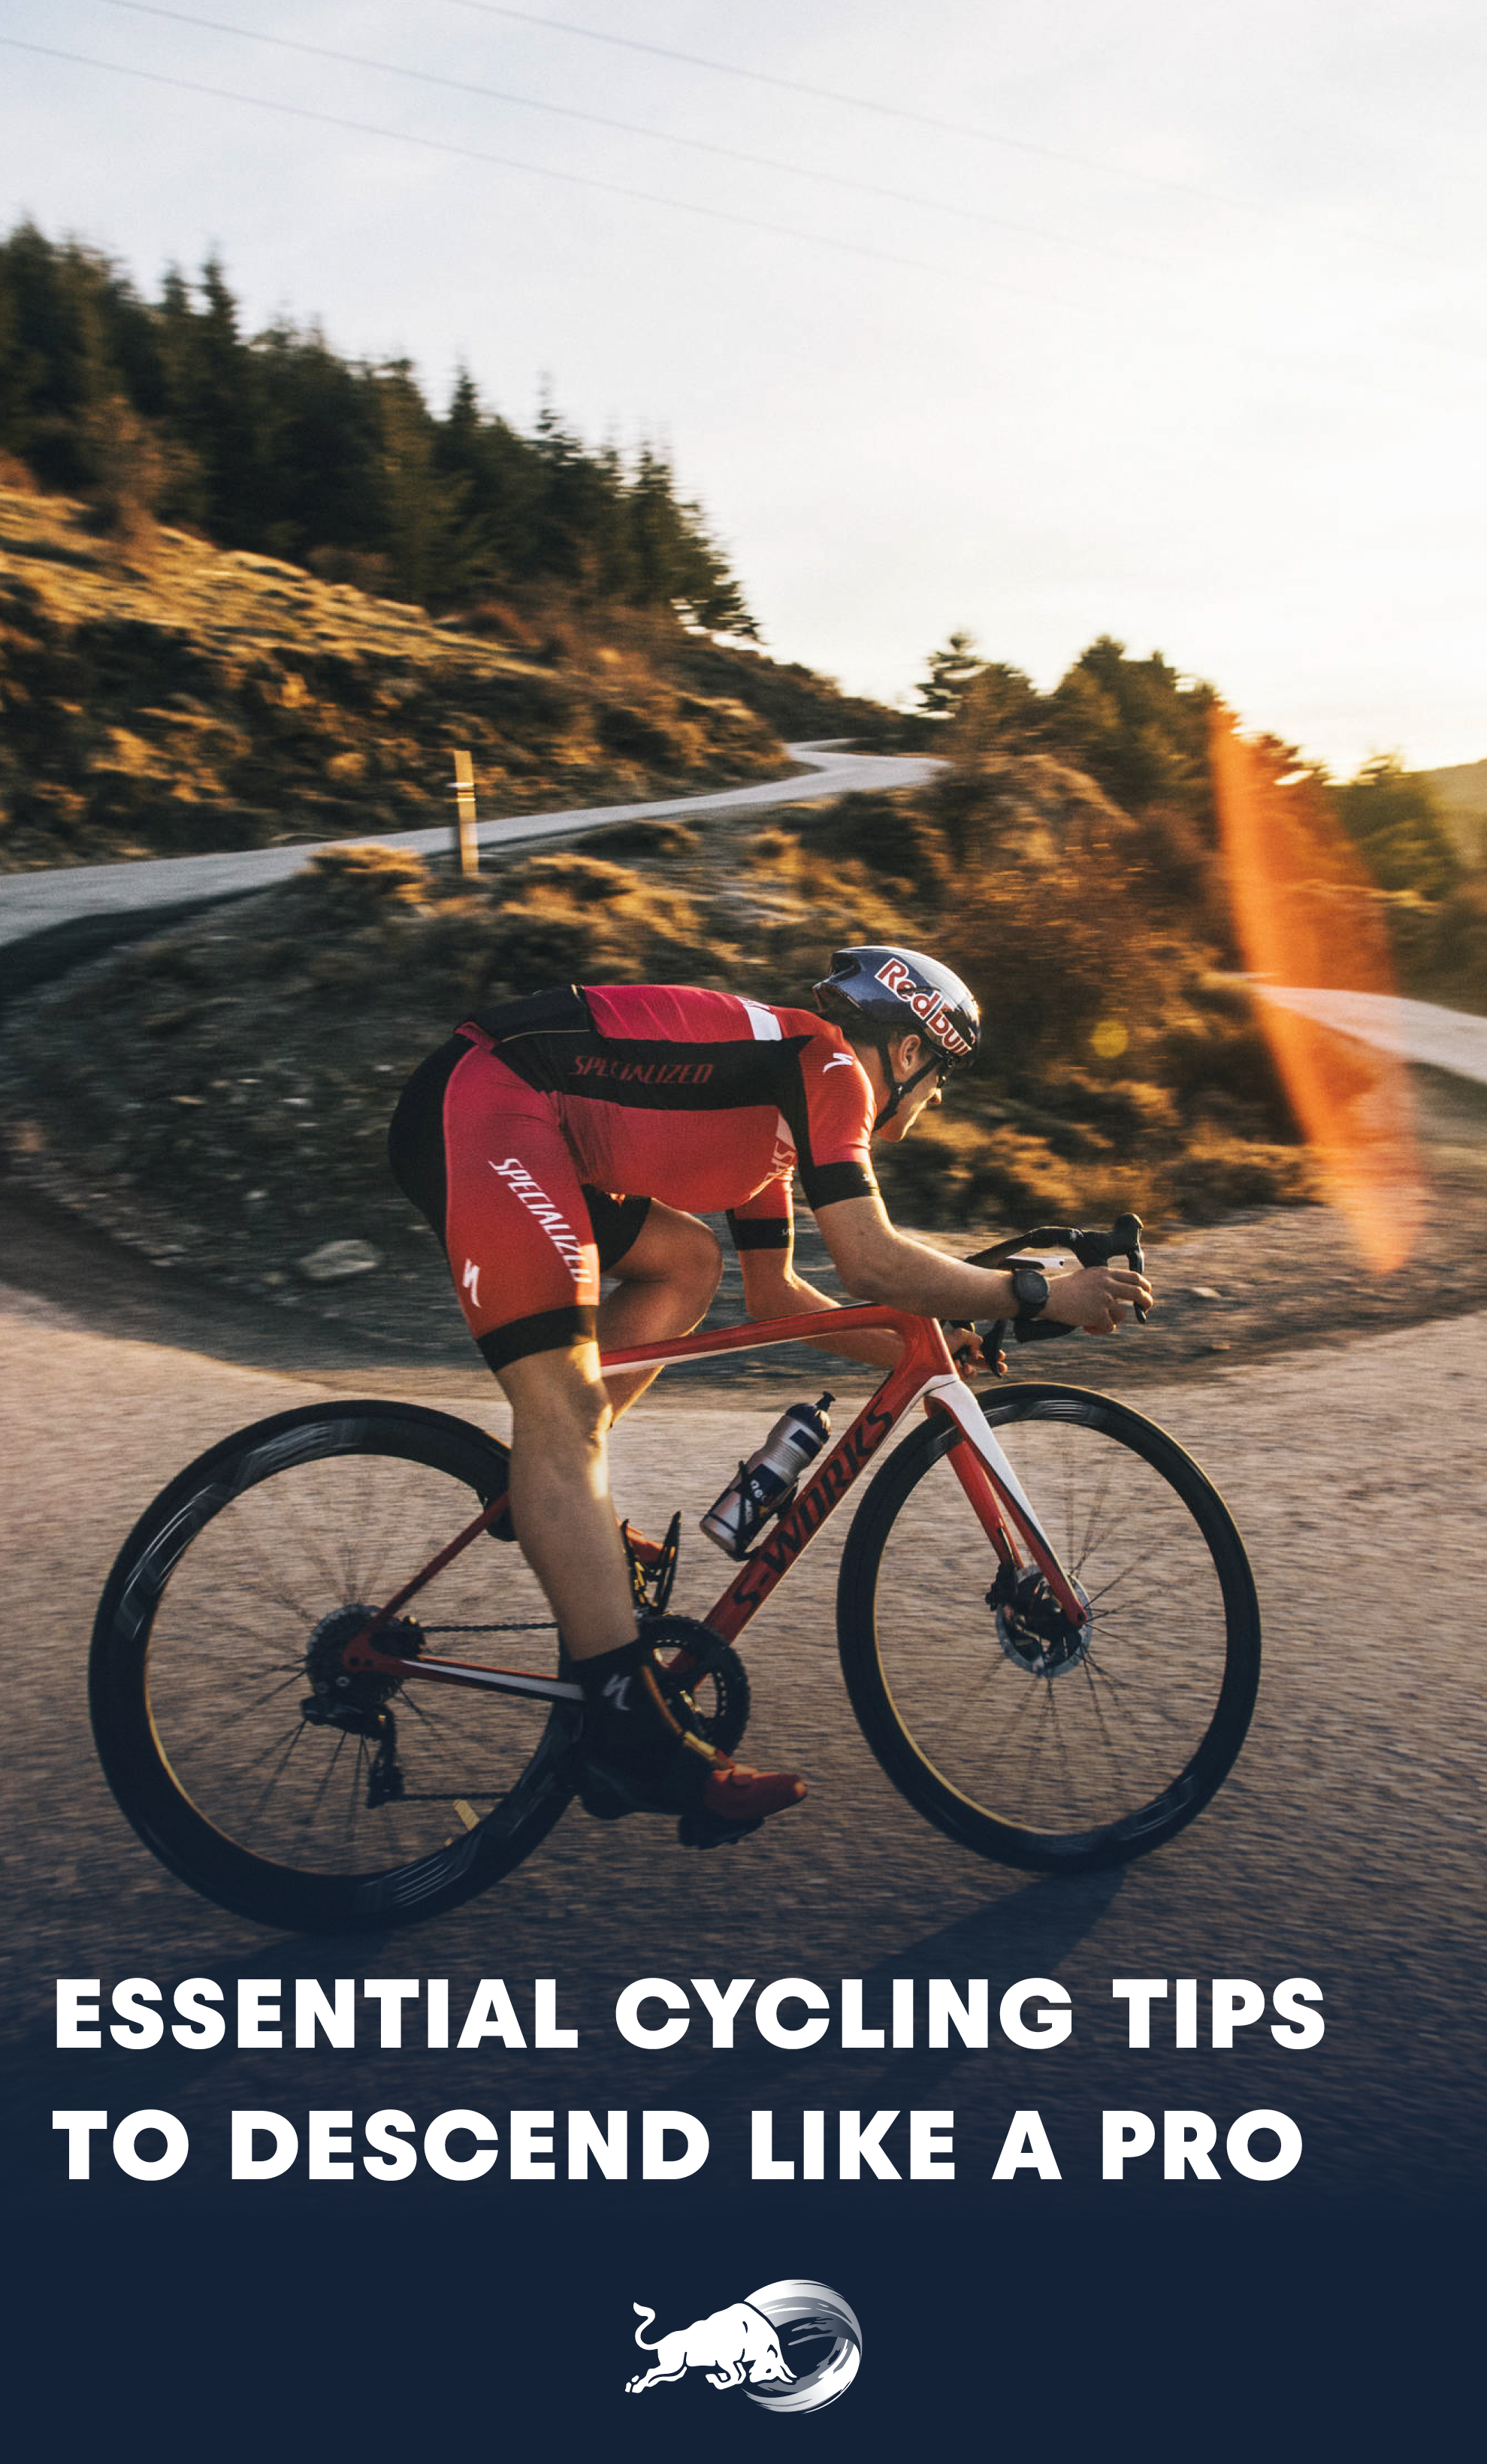 These Tips Will Get You Descending On A Road Bike Like A Pro